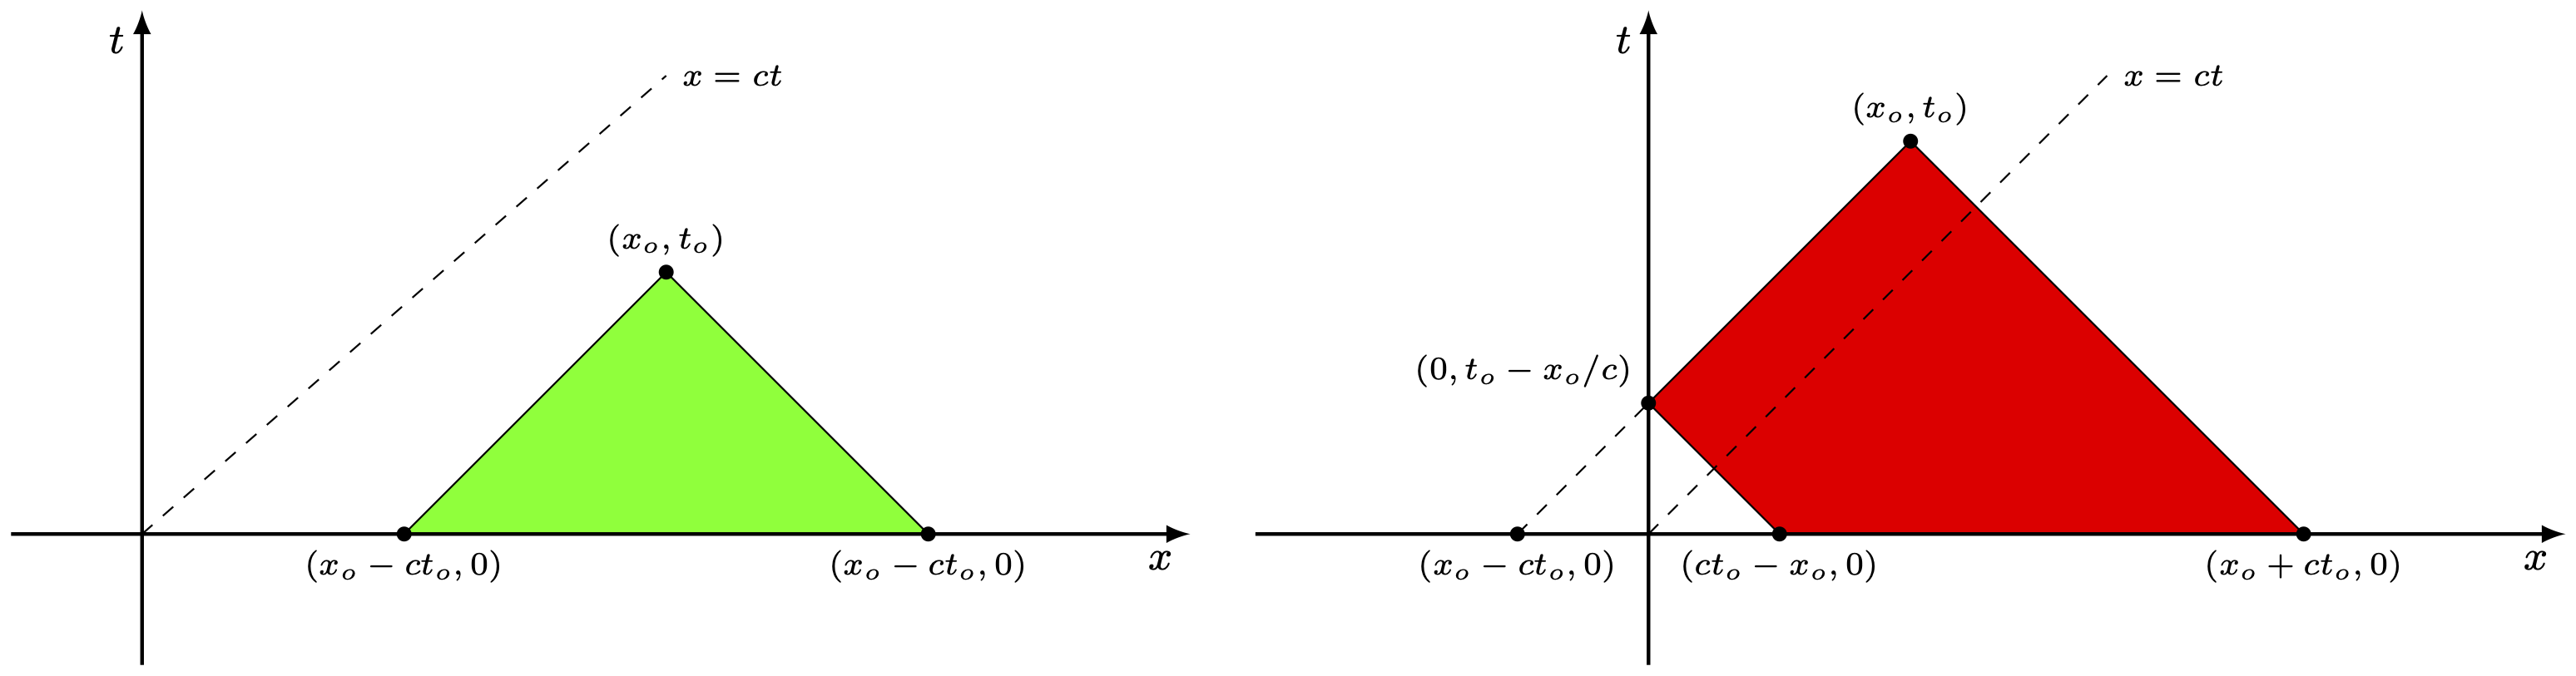 graph-from-diffential-equations